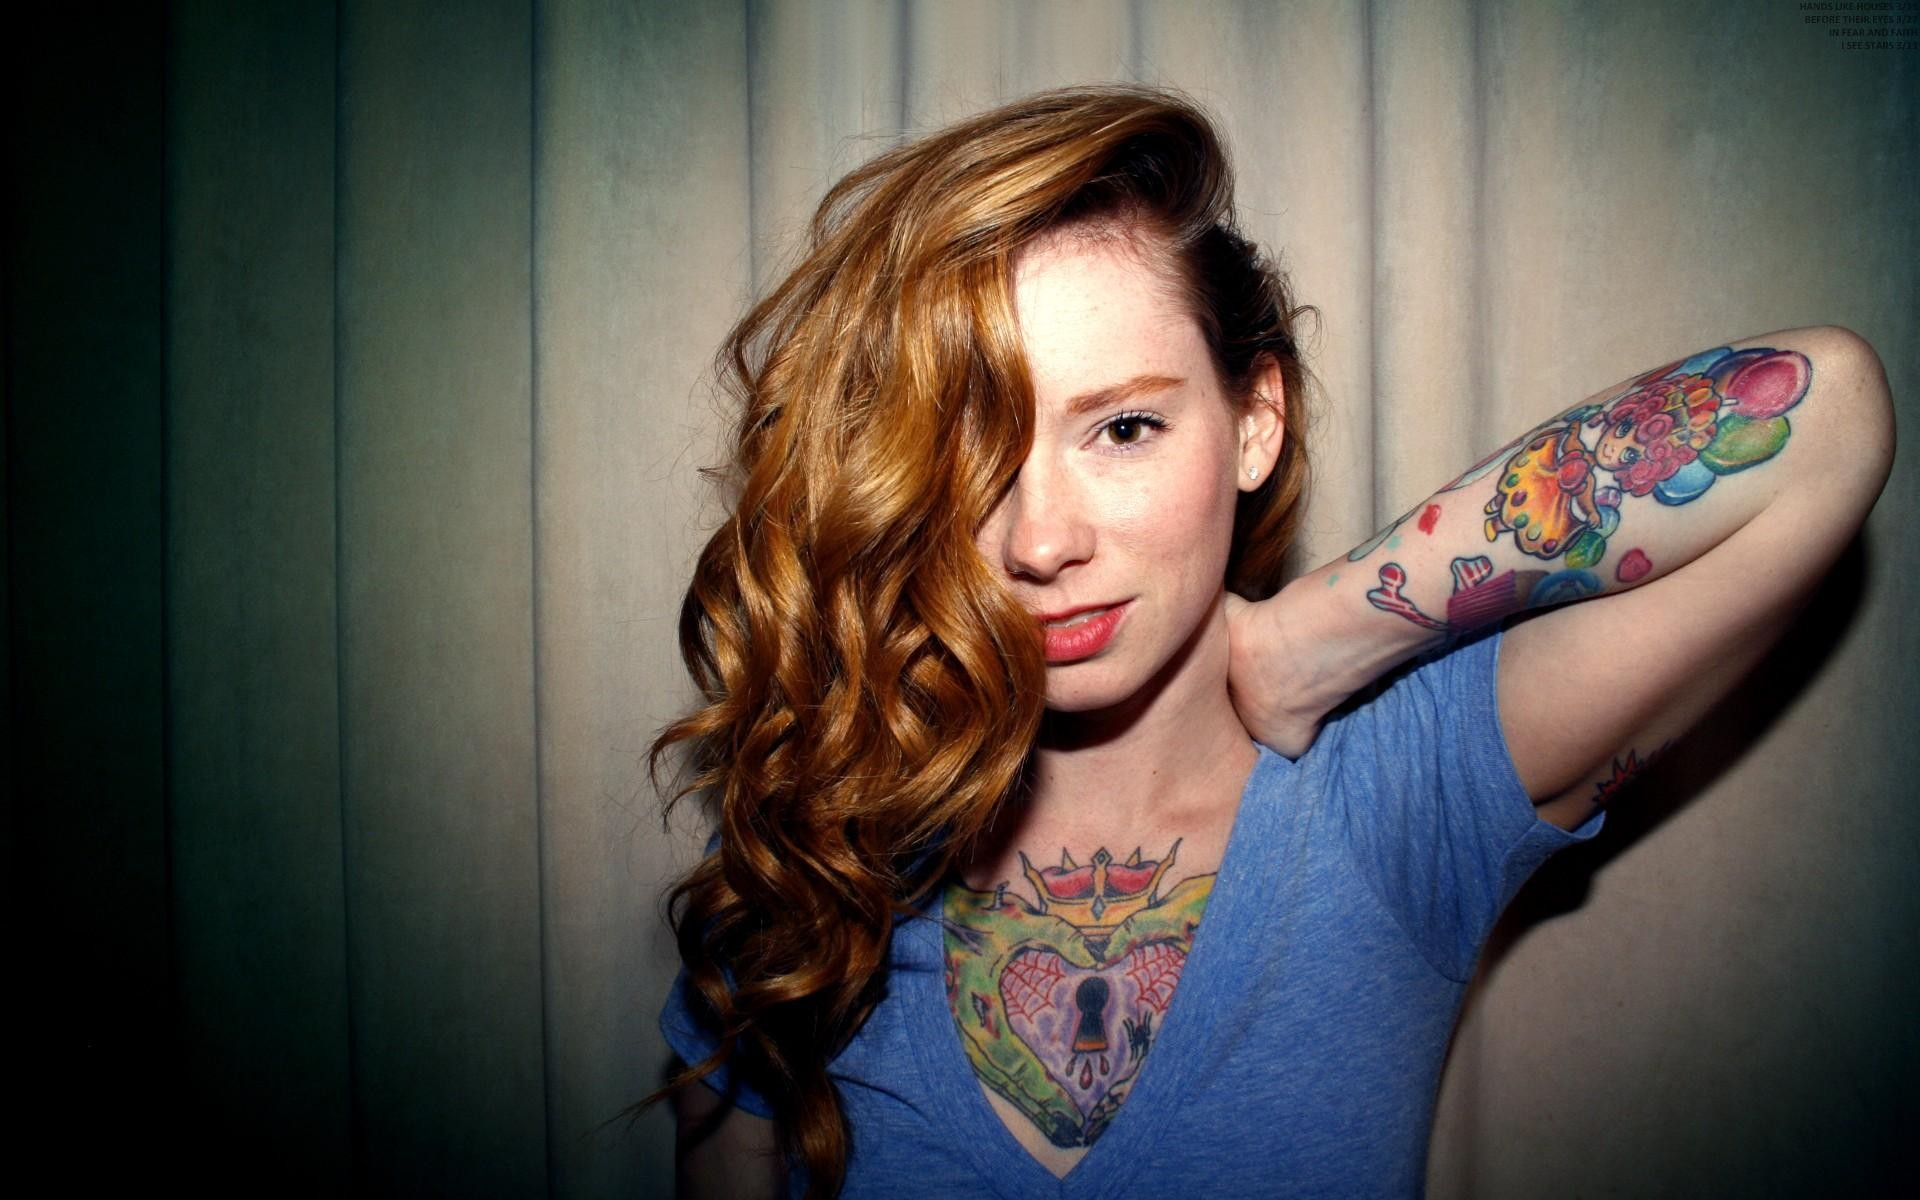 Tattoos Women Wallpaper 1920x1200 Tattoos Women Redheads Hattie 1920x1200